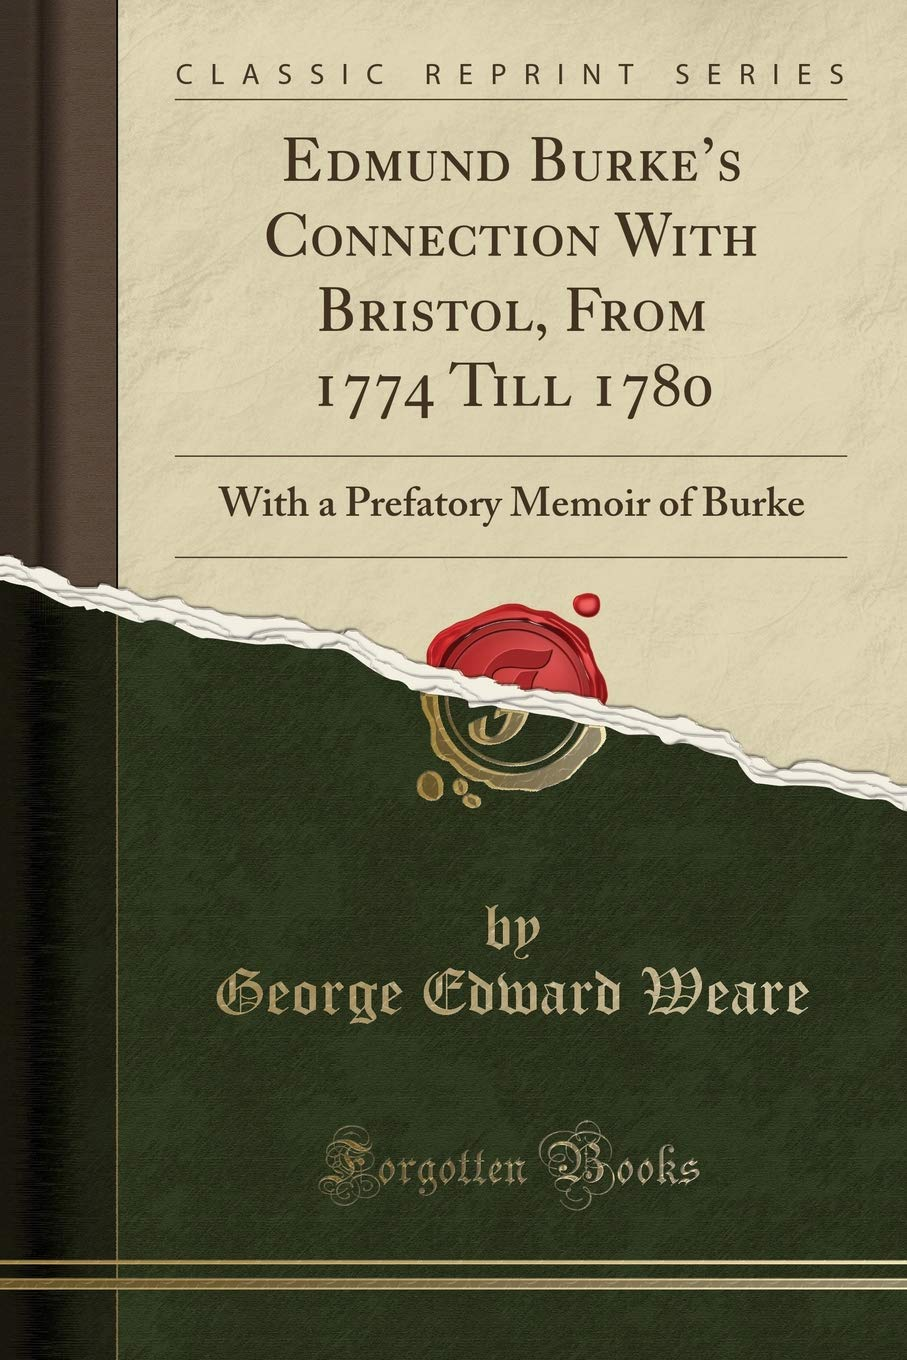 Edmund Burke's Connection With Bristol, From 1774 Till 1780: With a Prefatory Memoir of Burke (Classic Reprint) pdf